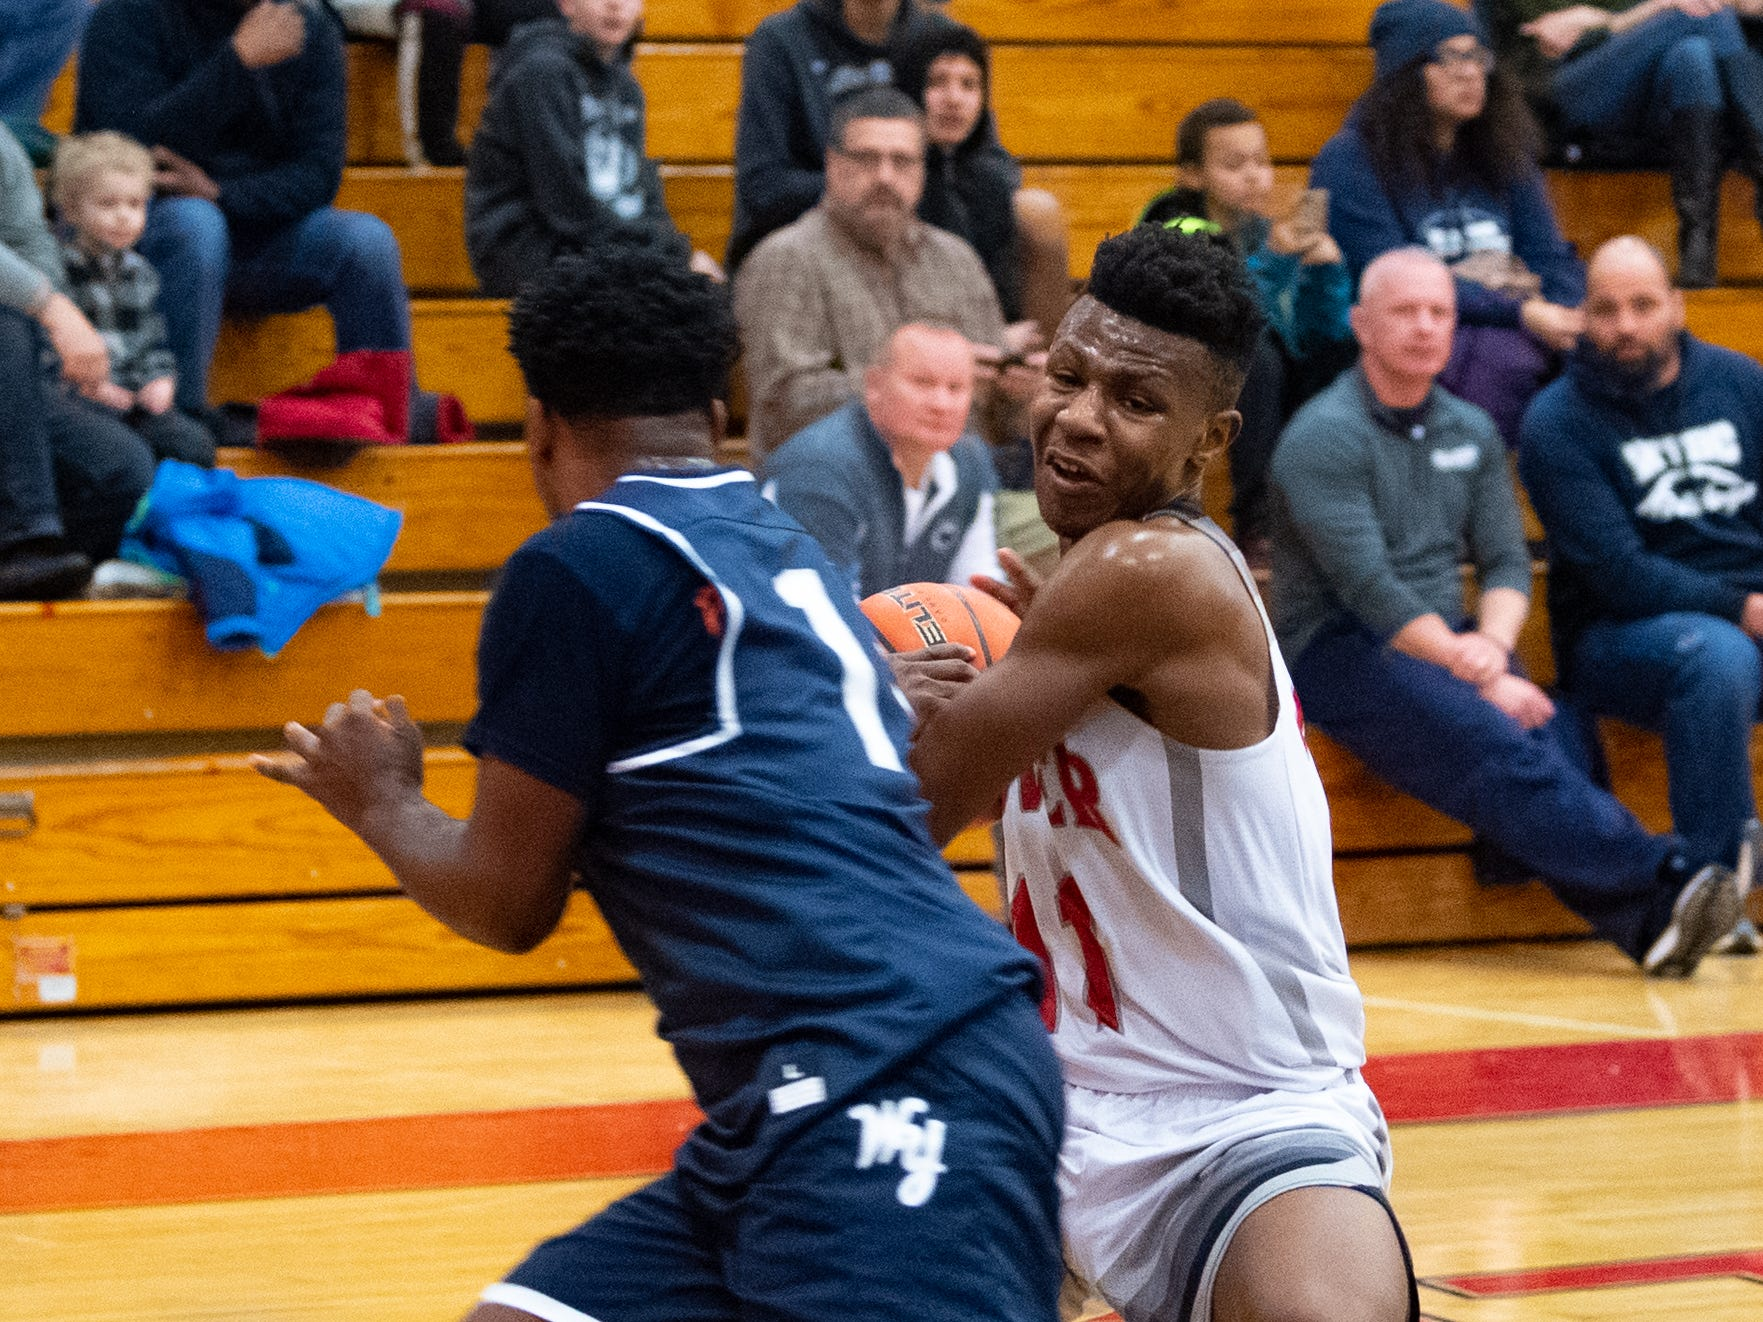 Victor Dorm tries to protect the ball during the boys' basketball game between Dover and West York, February 1, 2019. The Eagles defeated the Bulldogs 65 to 58.